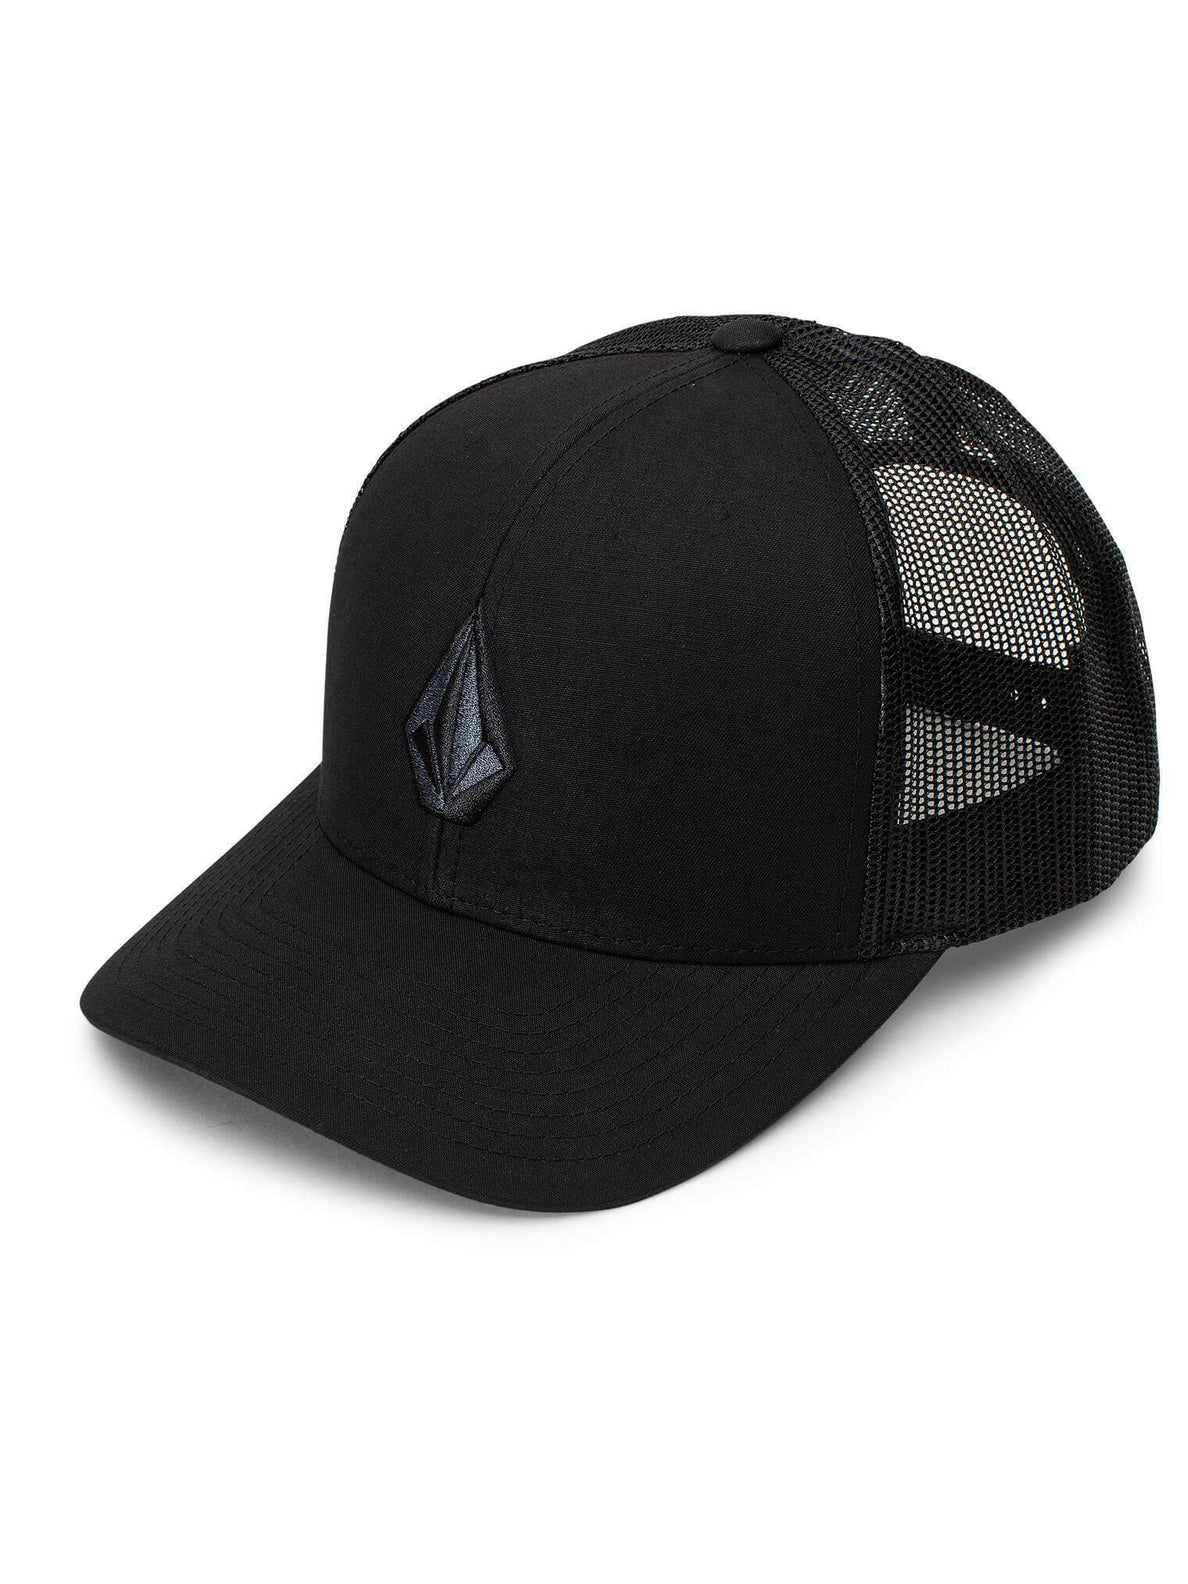 Gorra Full Stone Cheese - Asphalt Black